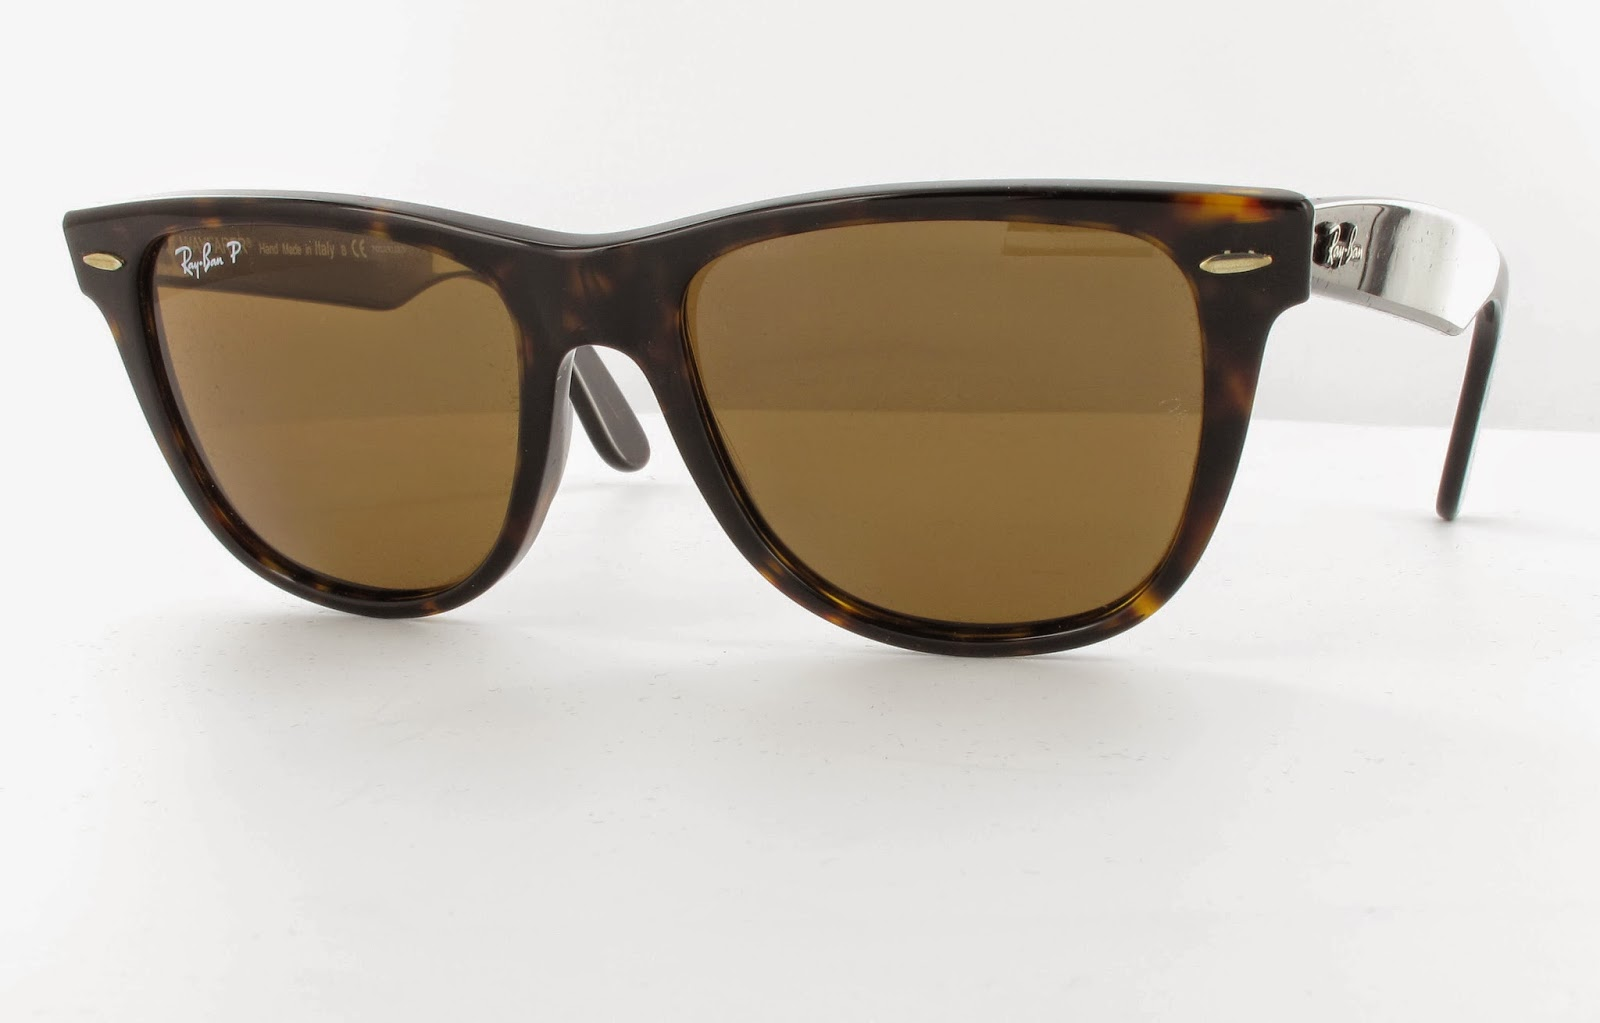 Sunglasses at SimplySuns: Protect your Eyes this Summer